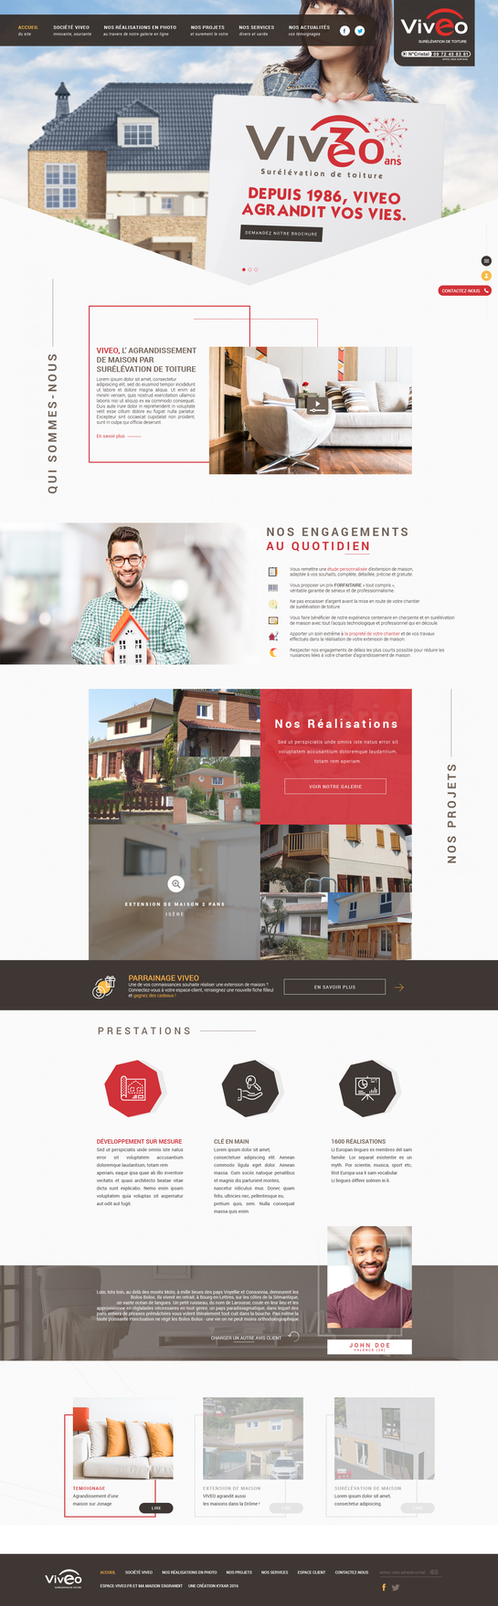 Espace VIVEO - Official Webdesign by ShinDatenshi